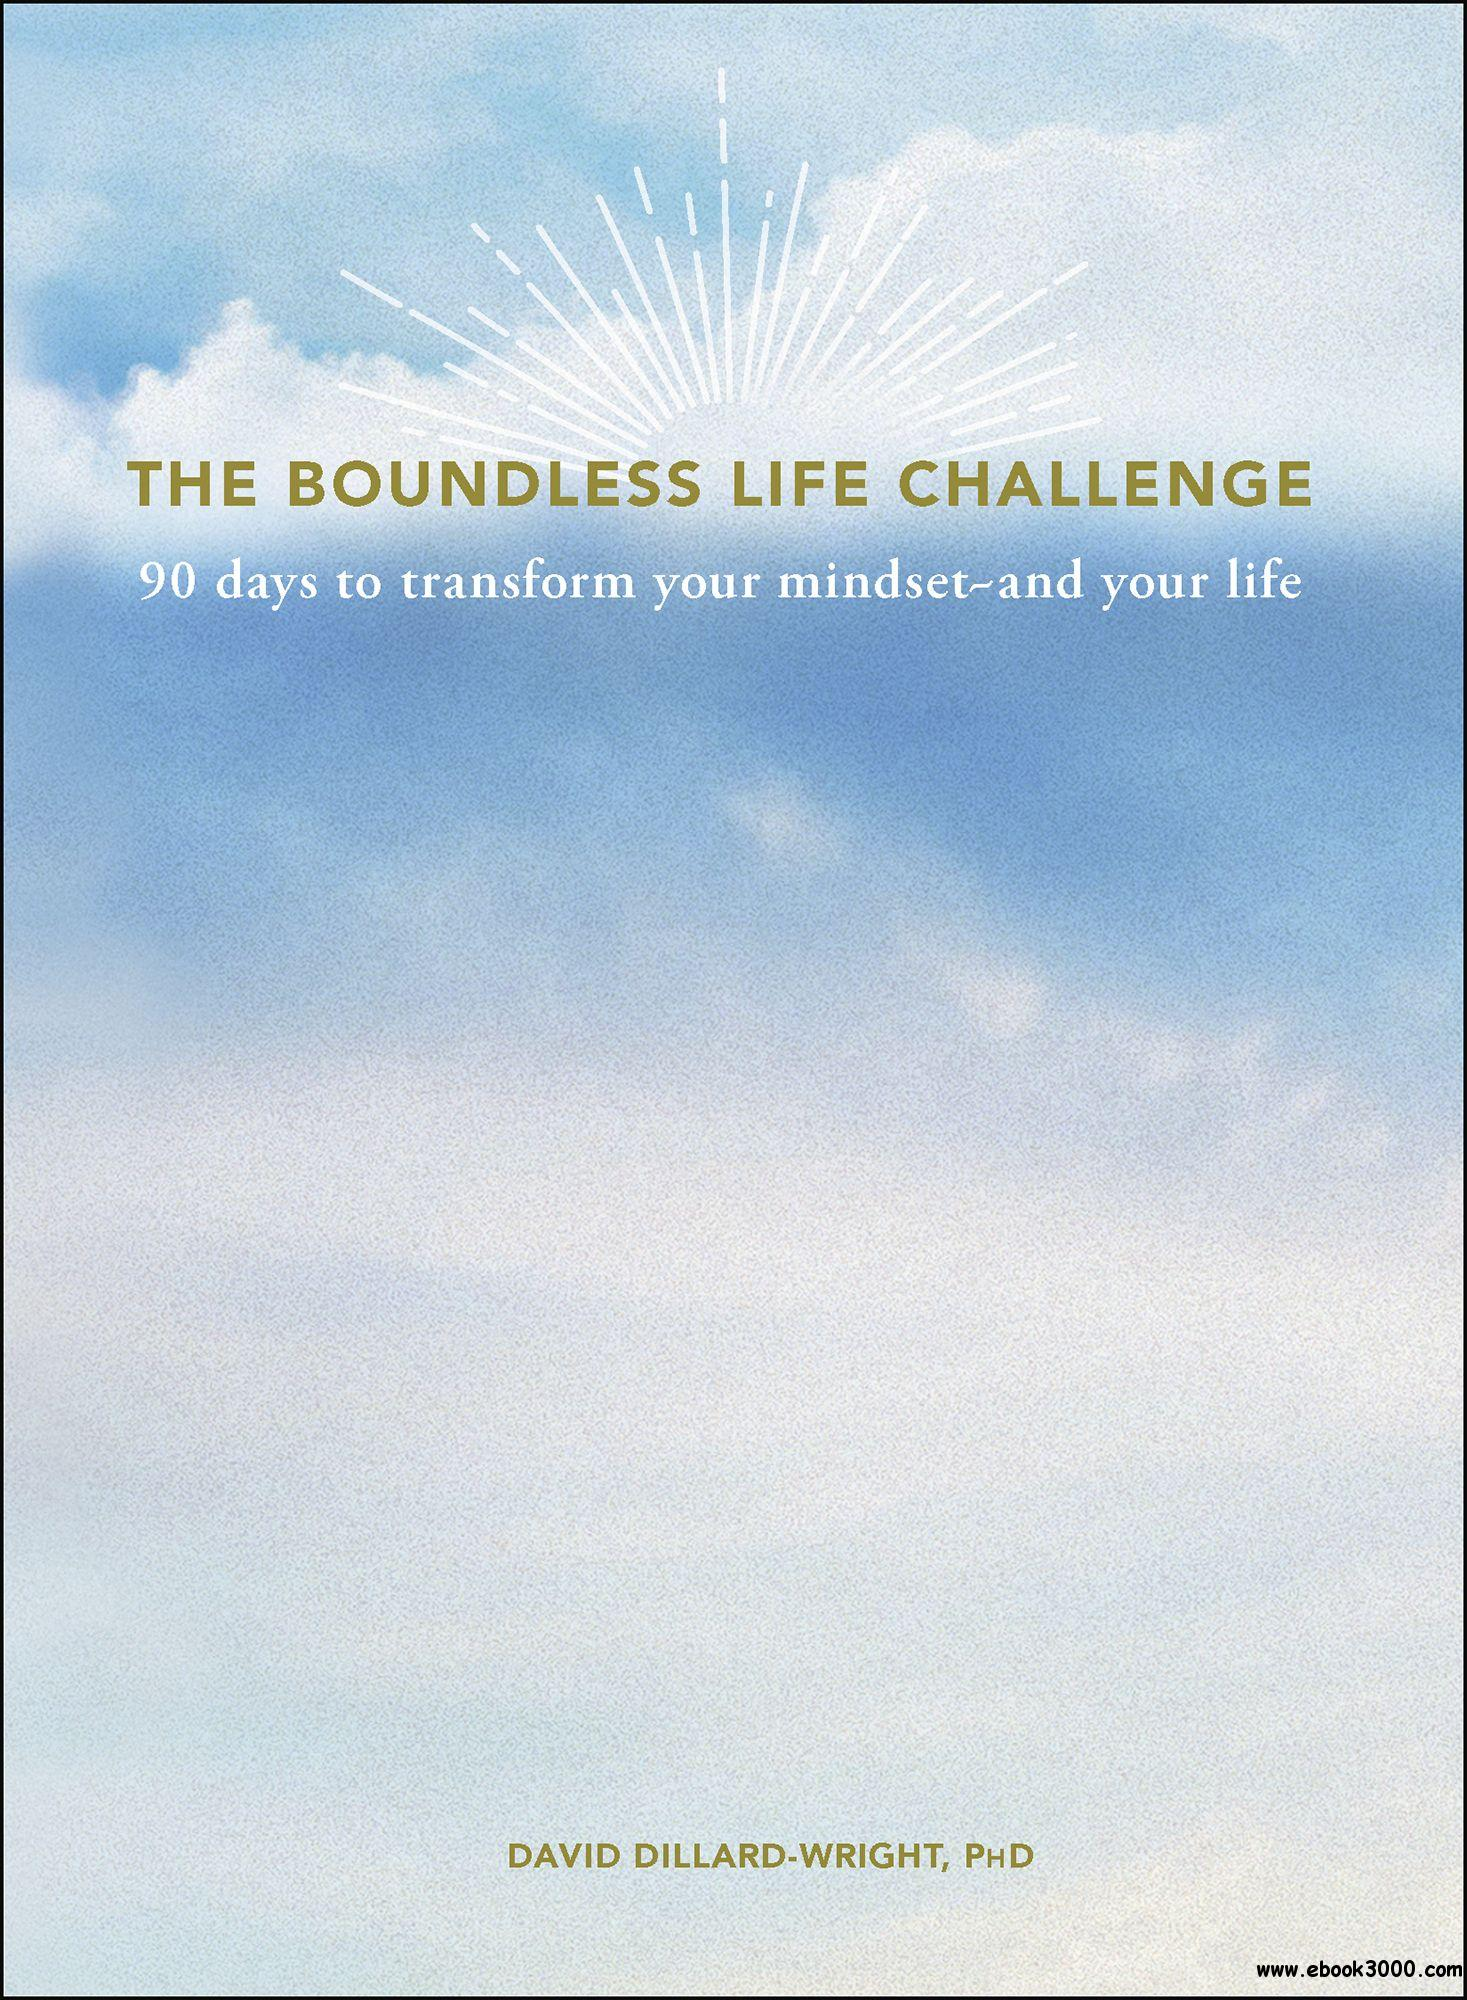 The Boundless Life Challenge: 90 Days to Transform Your Mindset--and Your Life